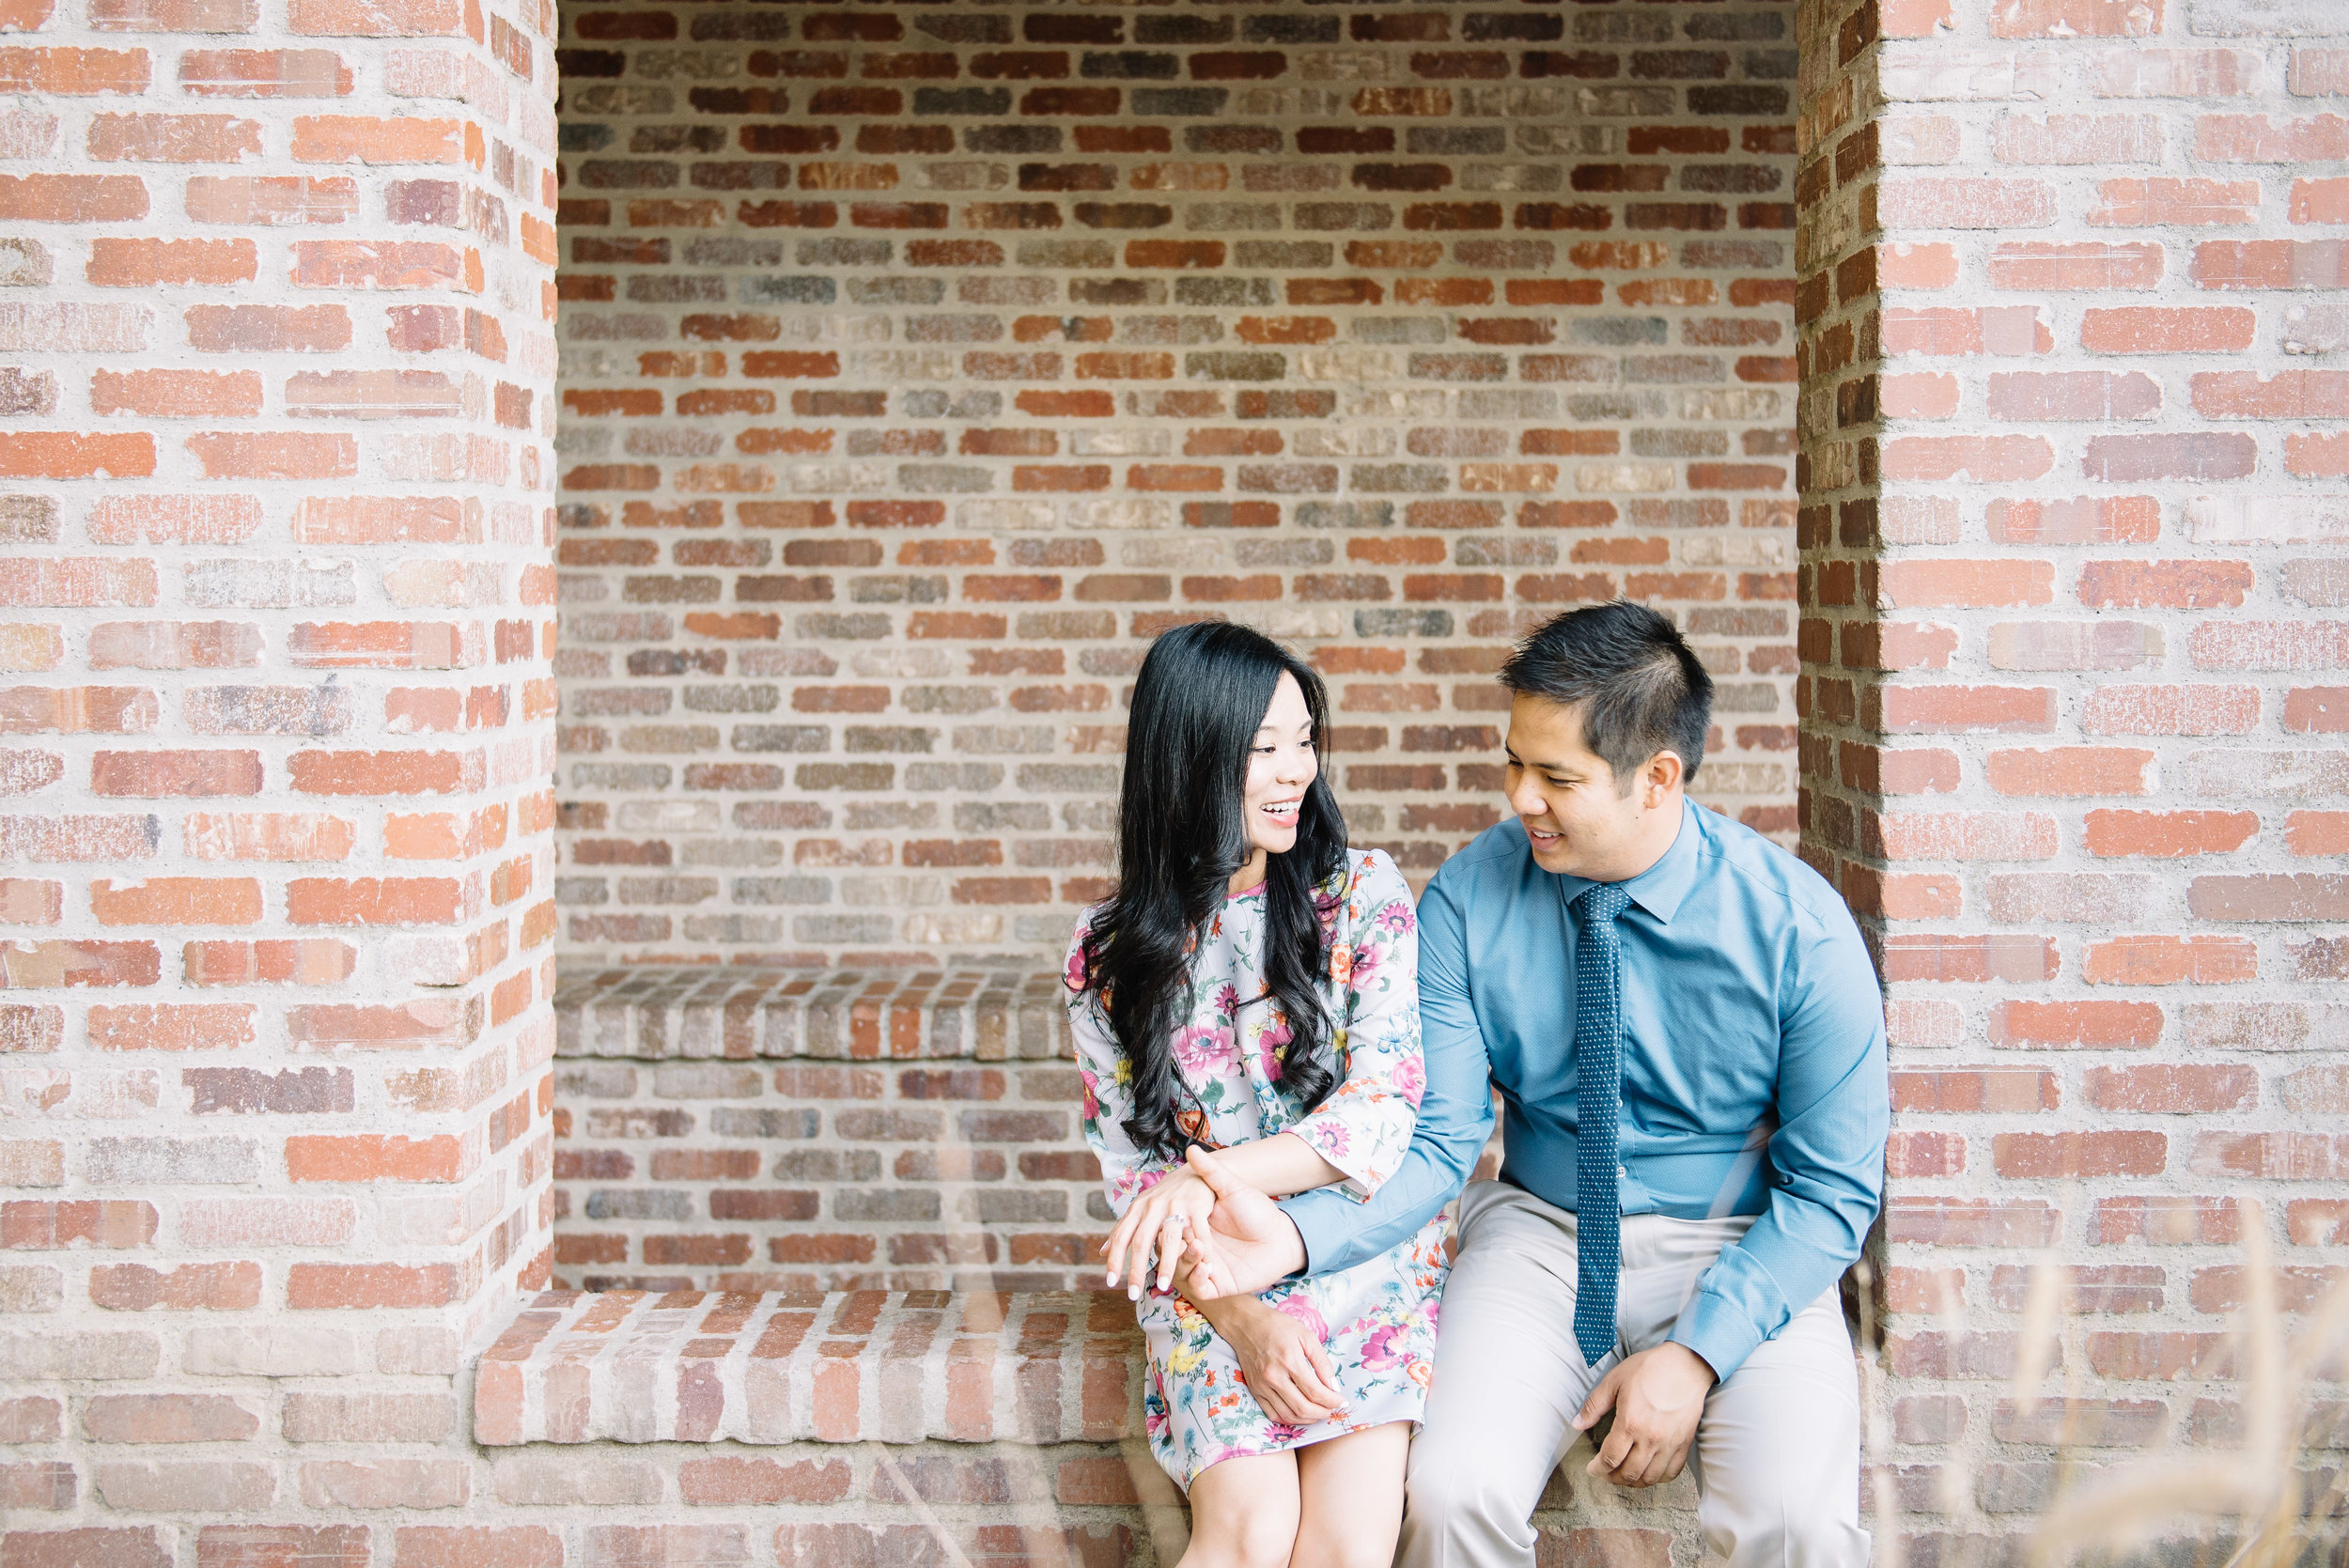 jennifer-jayn-photography-san-juan-capistrano-engagement-session-11.jpg